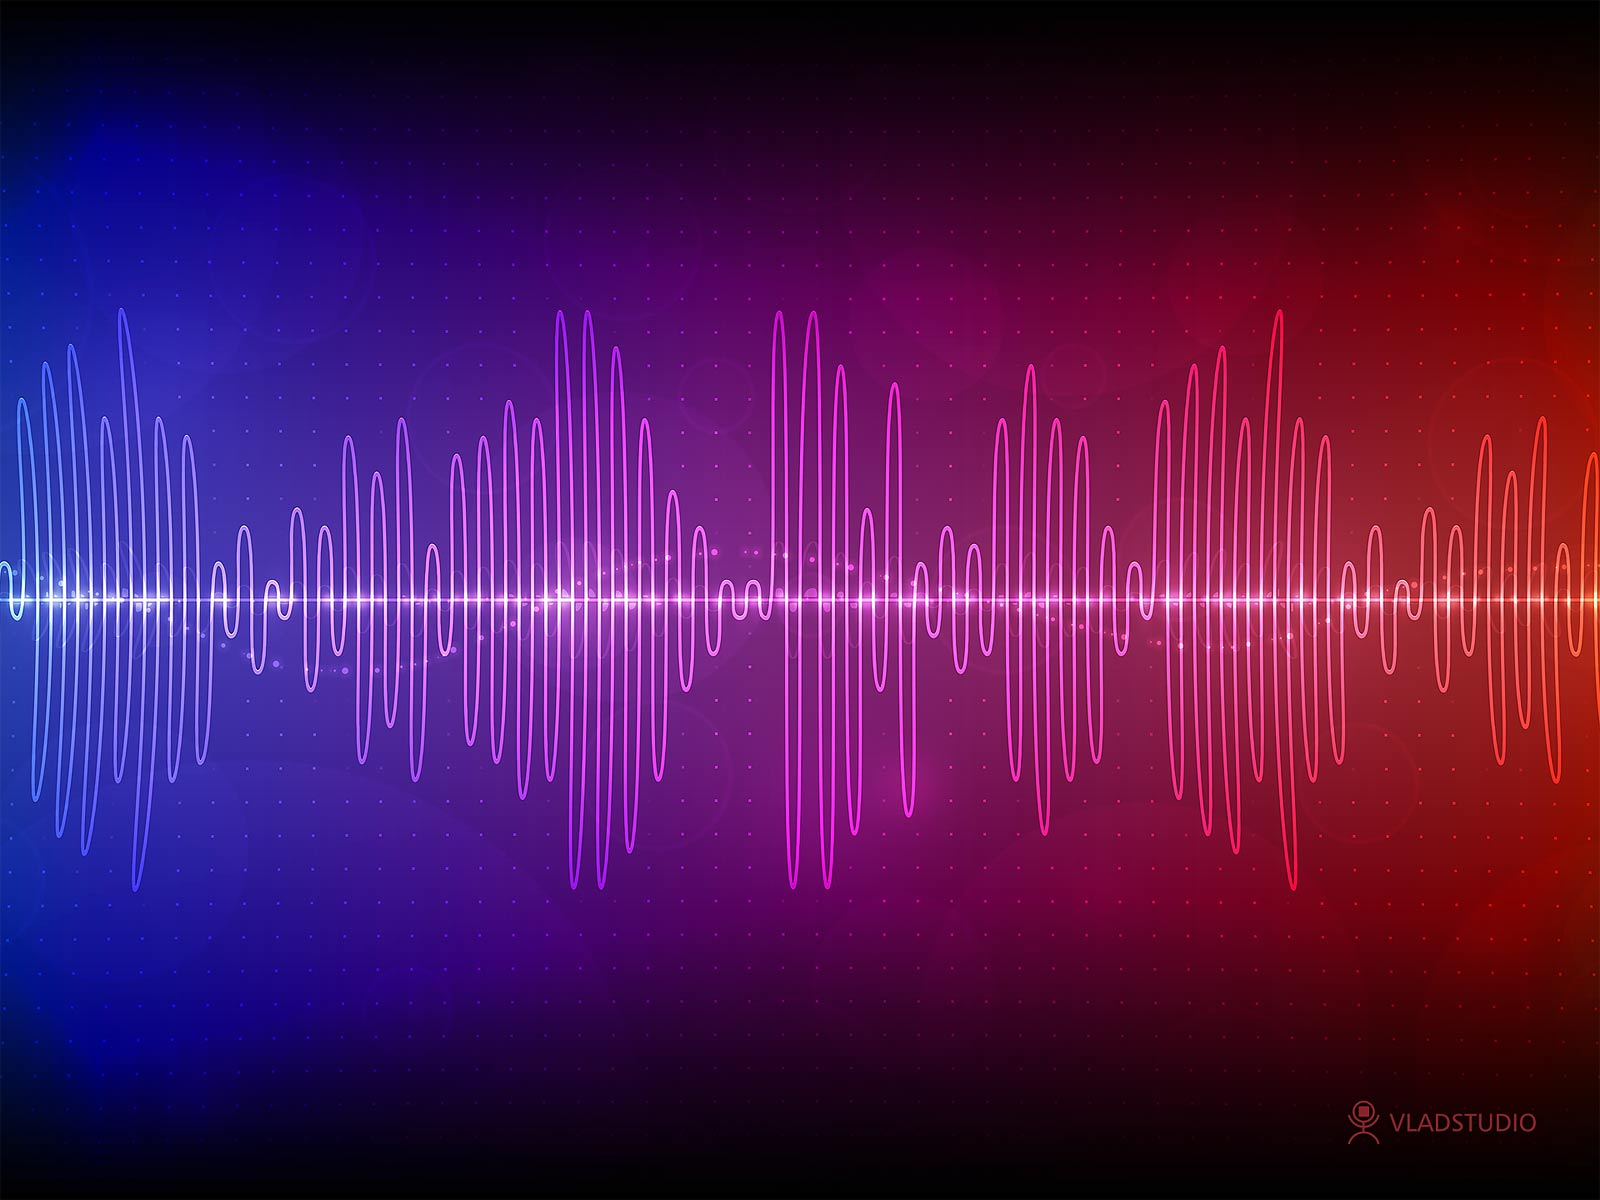 Sound Waves Wallpaper Images amp Pictures   Becuo 1600x1200